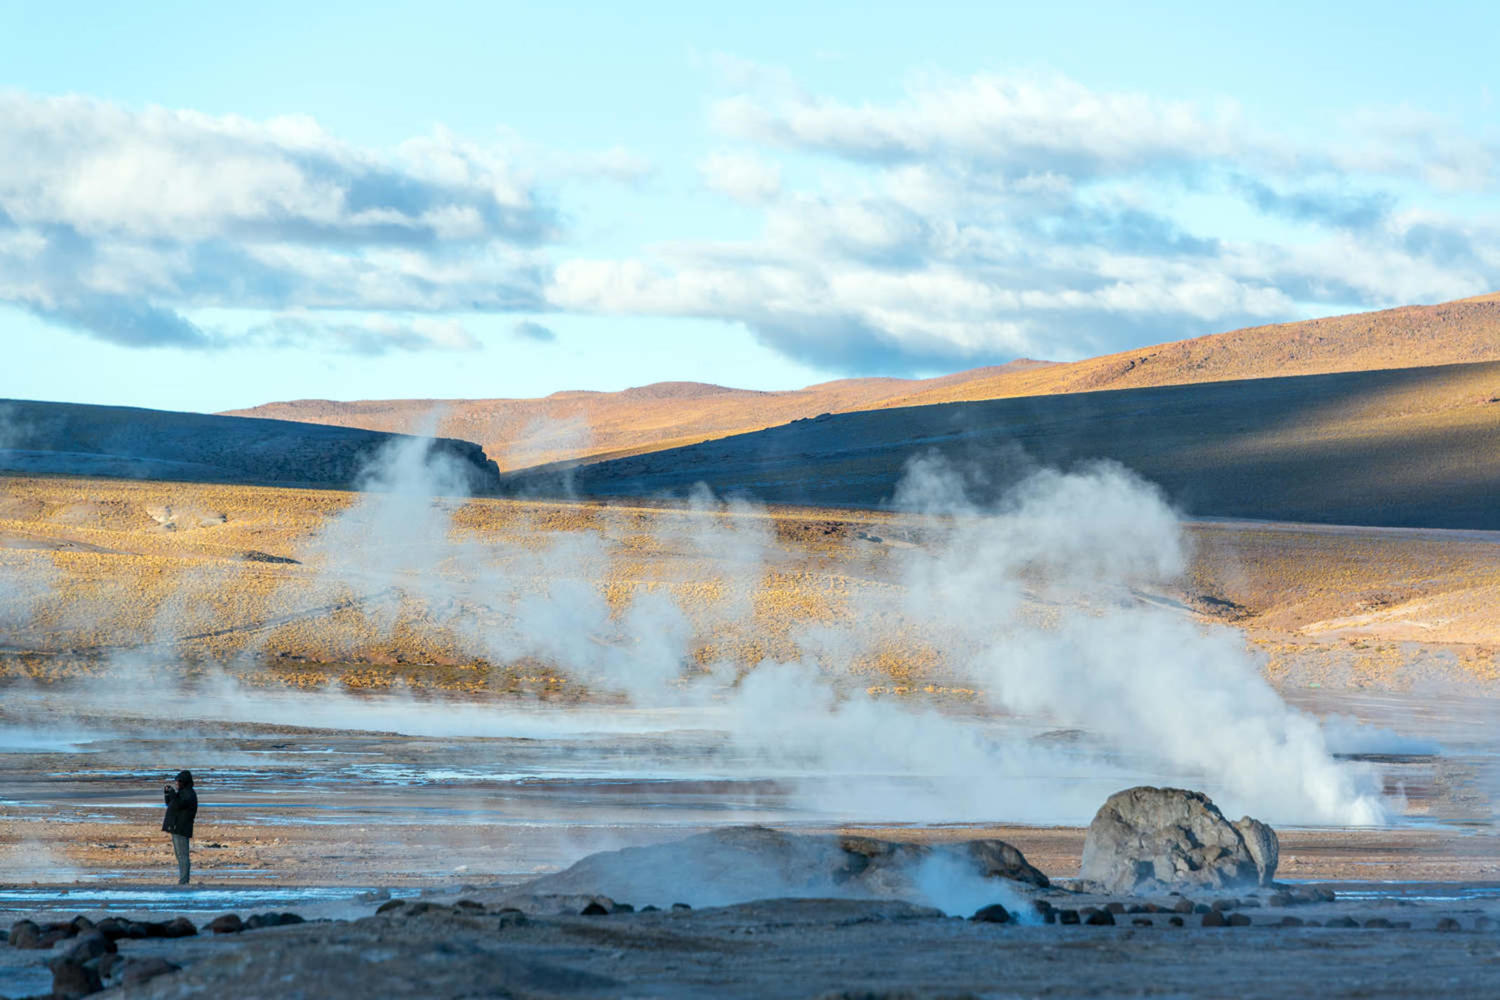 Steam rising out of the ground at El Tatio geyser